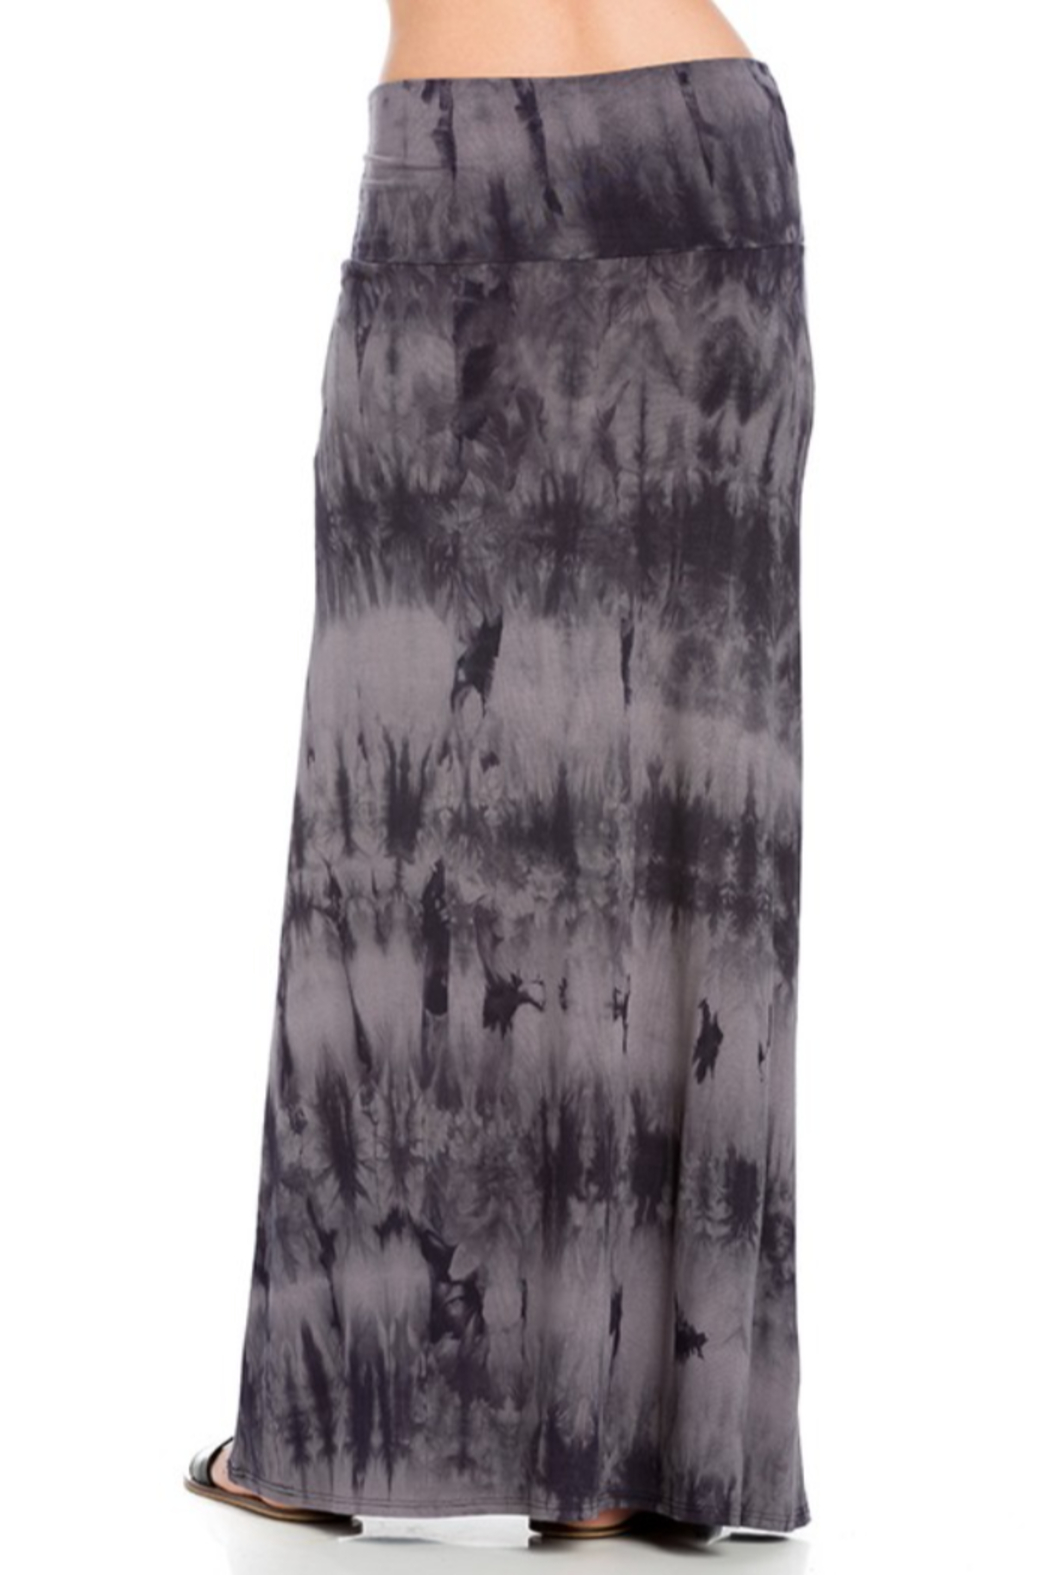 Azules Tie-Dye Maxi skirt with foldover waist - Side Cropped Image